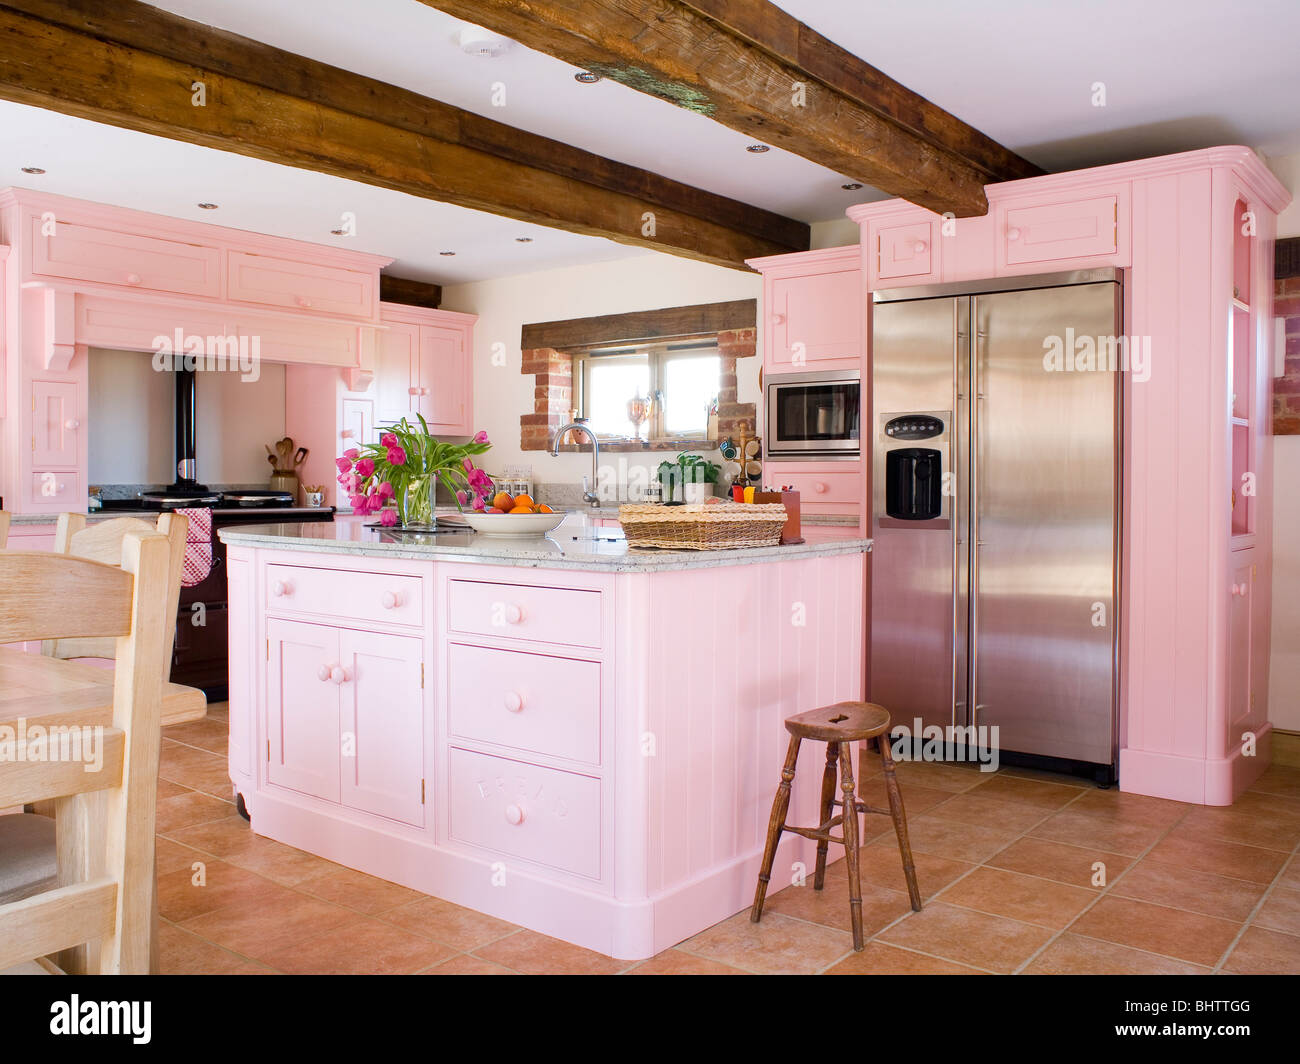 pastel pink fitted units and island unit in country kitchen with stock photo 28205648 alamy. Black Bedroom Furniture Sets. Home Design Ideas